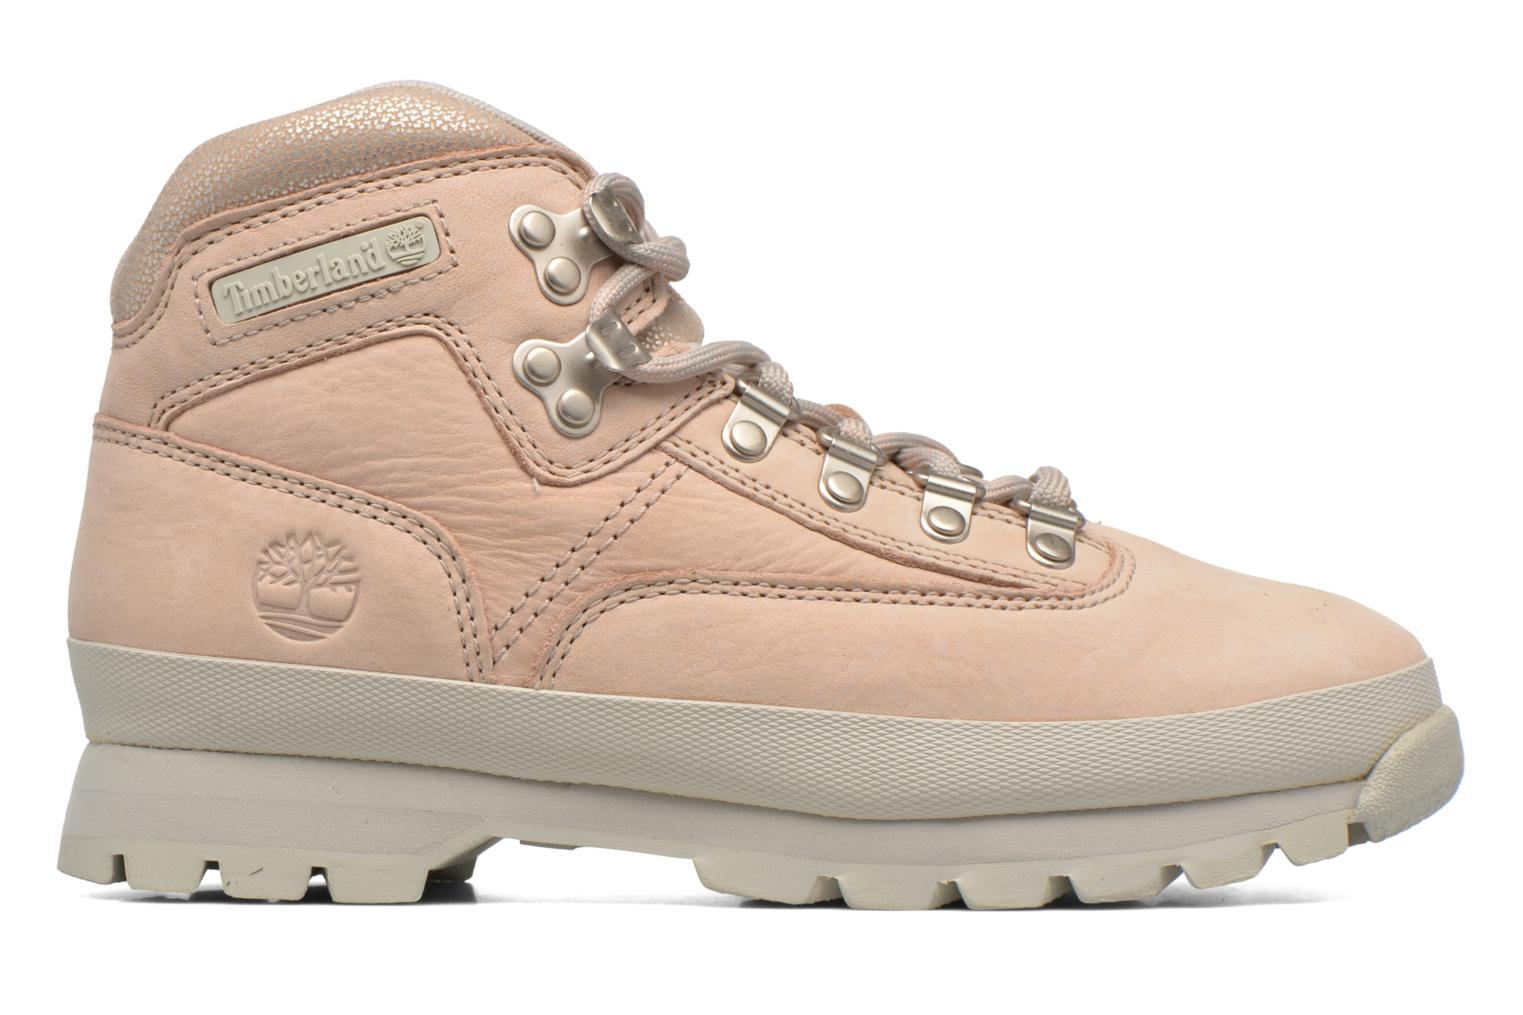 Chaussures à lacets Timberland Euro Hiker Leather Rose vue derrière